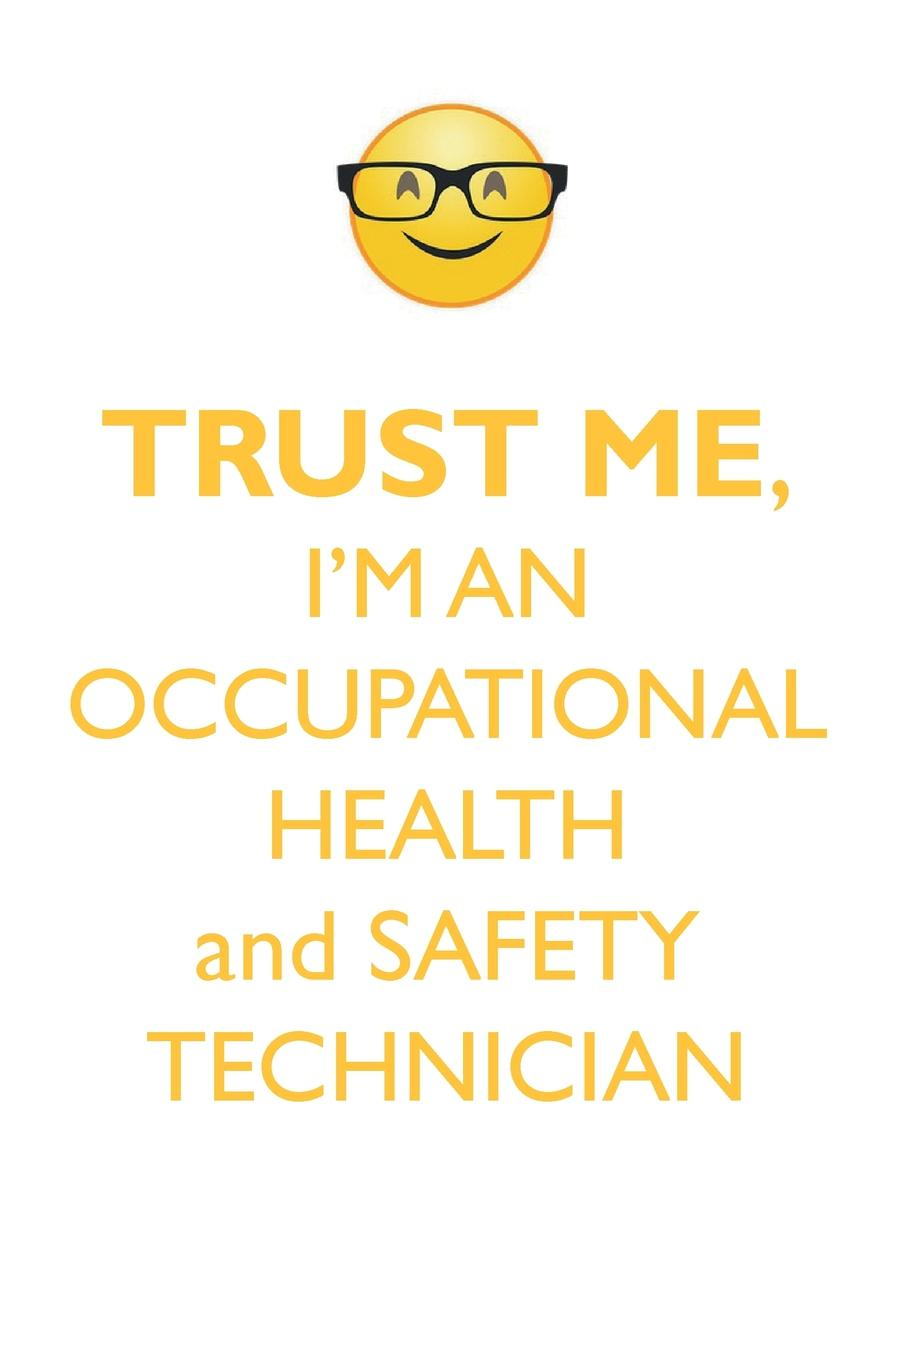 TRUST-ME-IM-AN-OCCUPATIONAL-HEALTH-and-SAFETY-TECHNICIAN-AFFIRMATIONS-WORKBOOK-Positive-Affirmations-Workbook-Includes-Mentoring-Questions-Guidance-Su